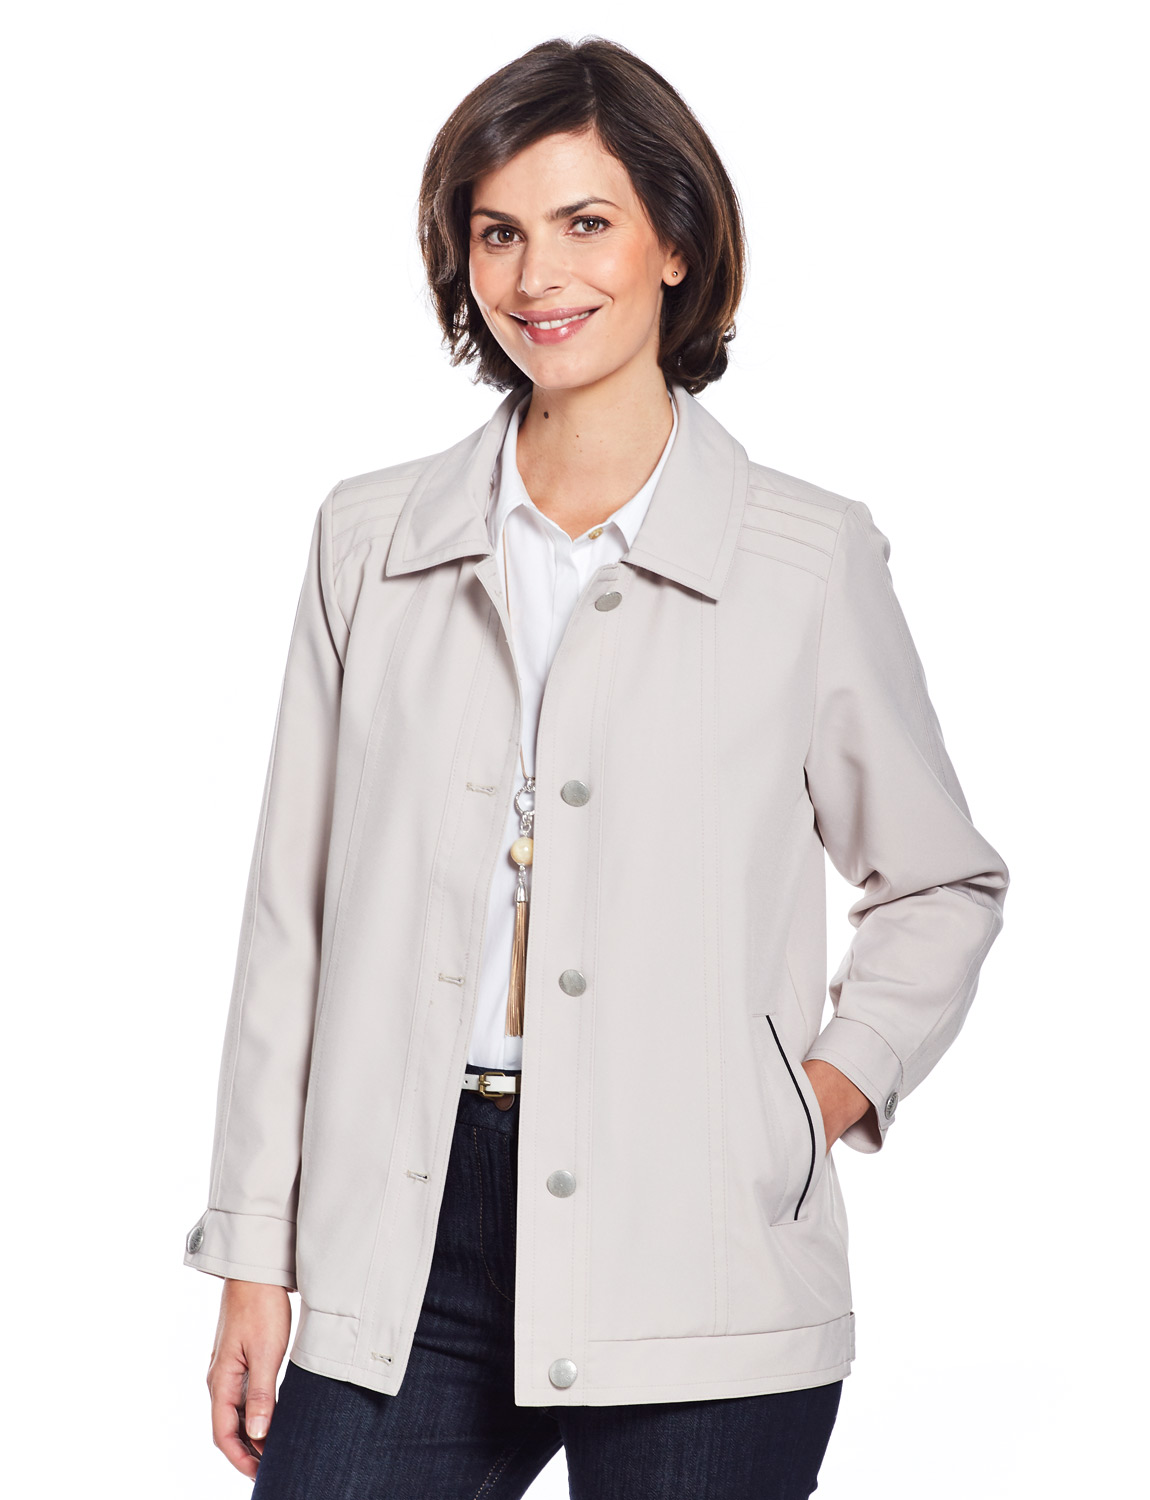 Shop for lightweight travel jacket womens online at Target. Free shipping on purchases over $35 and save 5% every day with your Target REDcard.